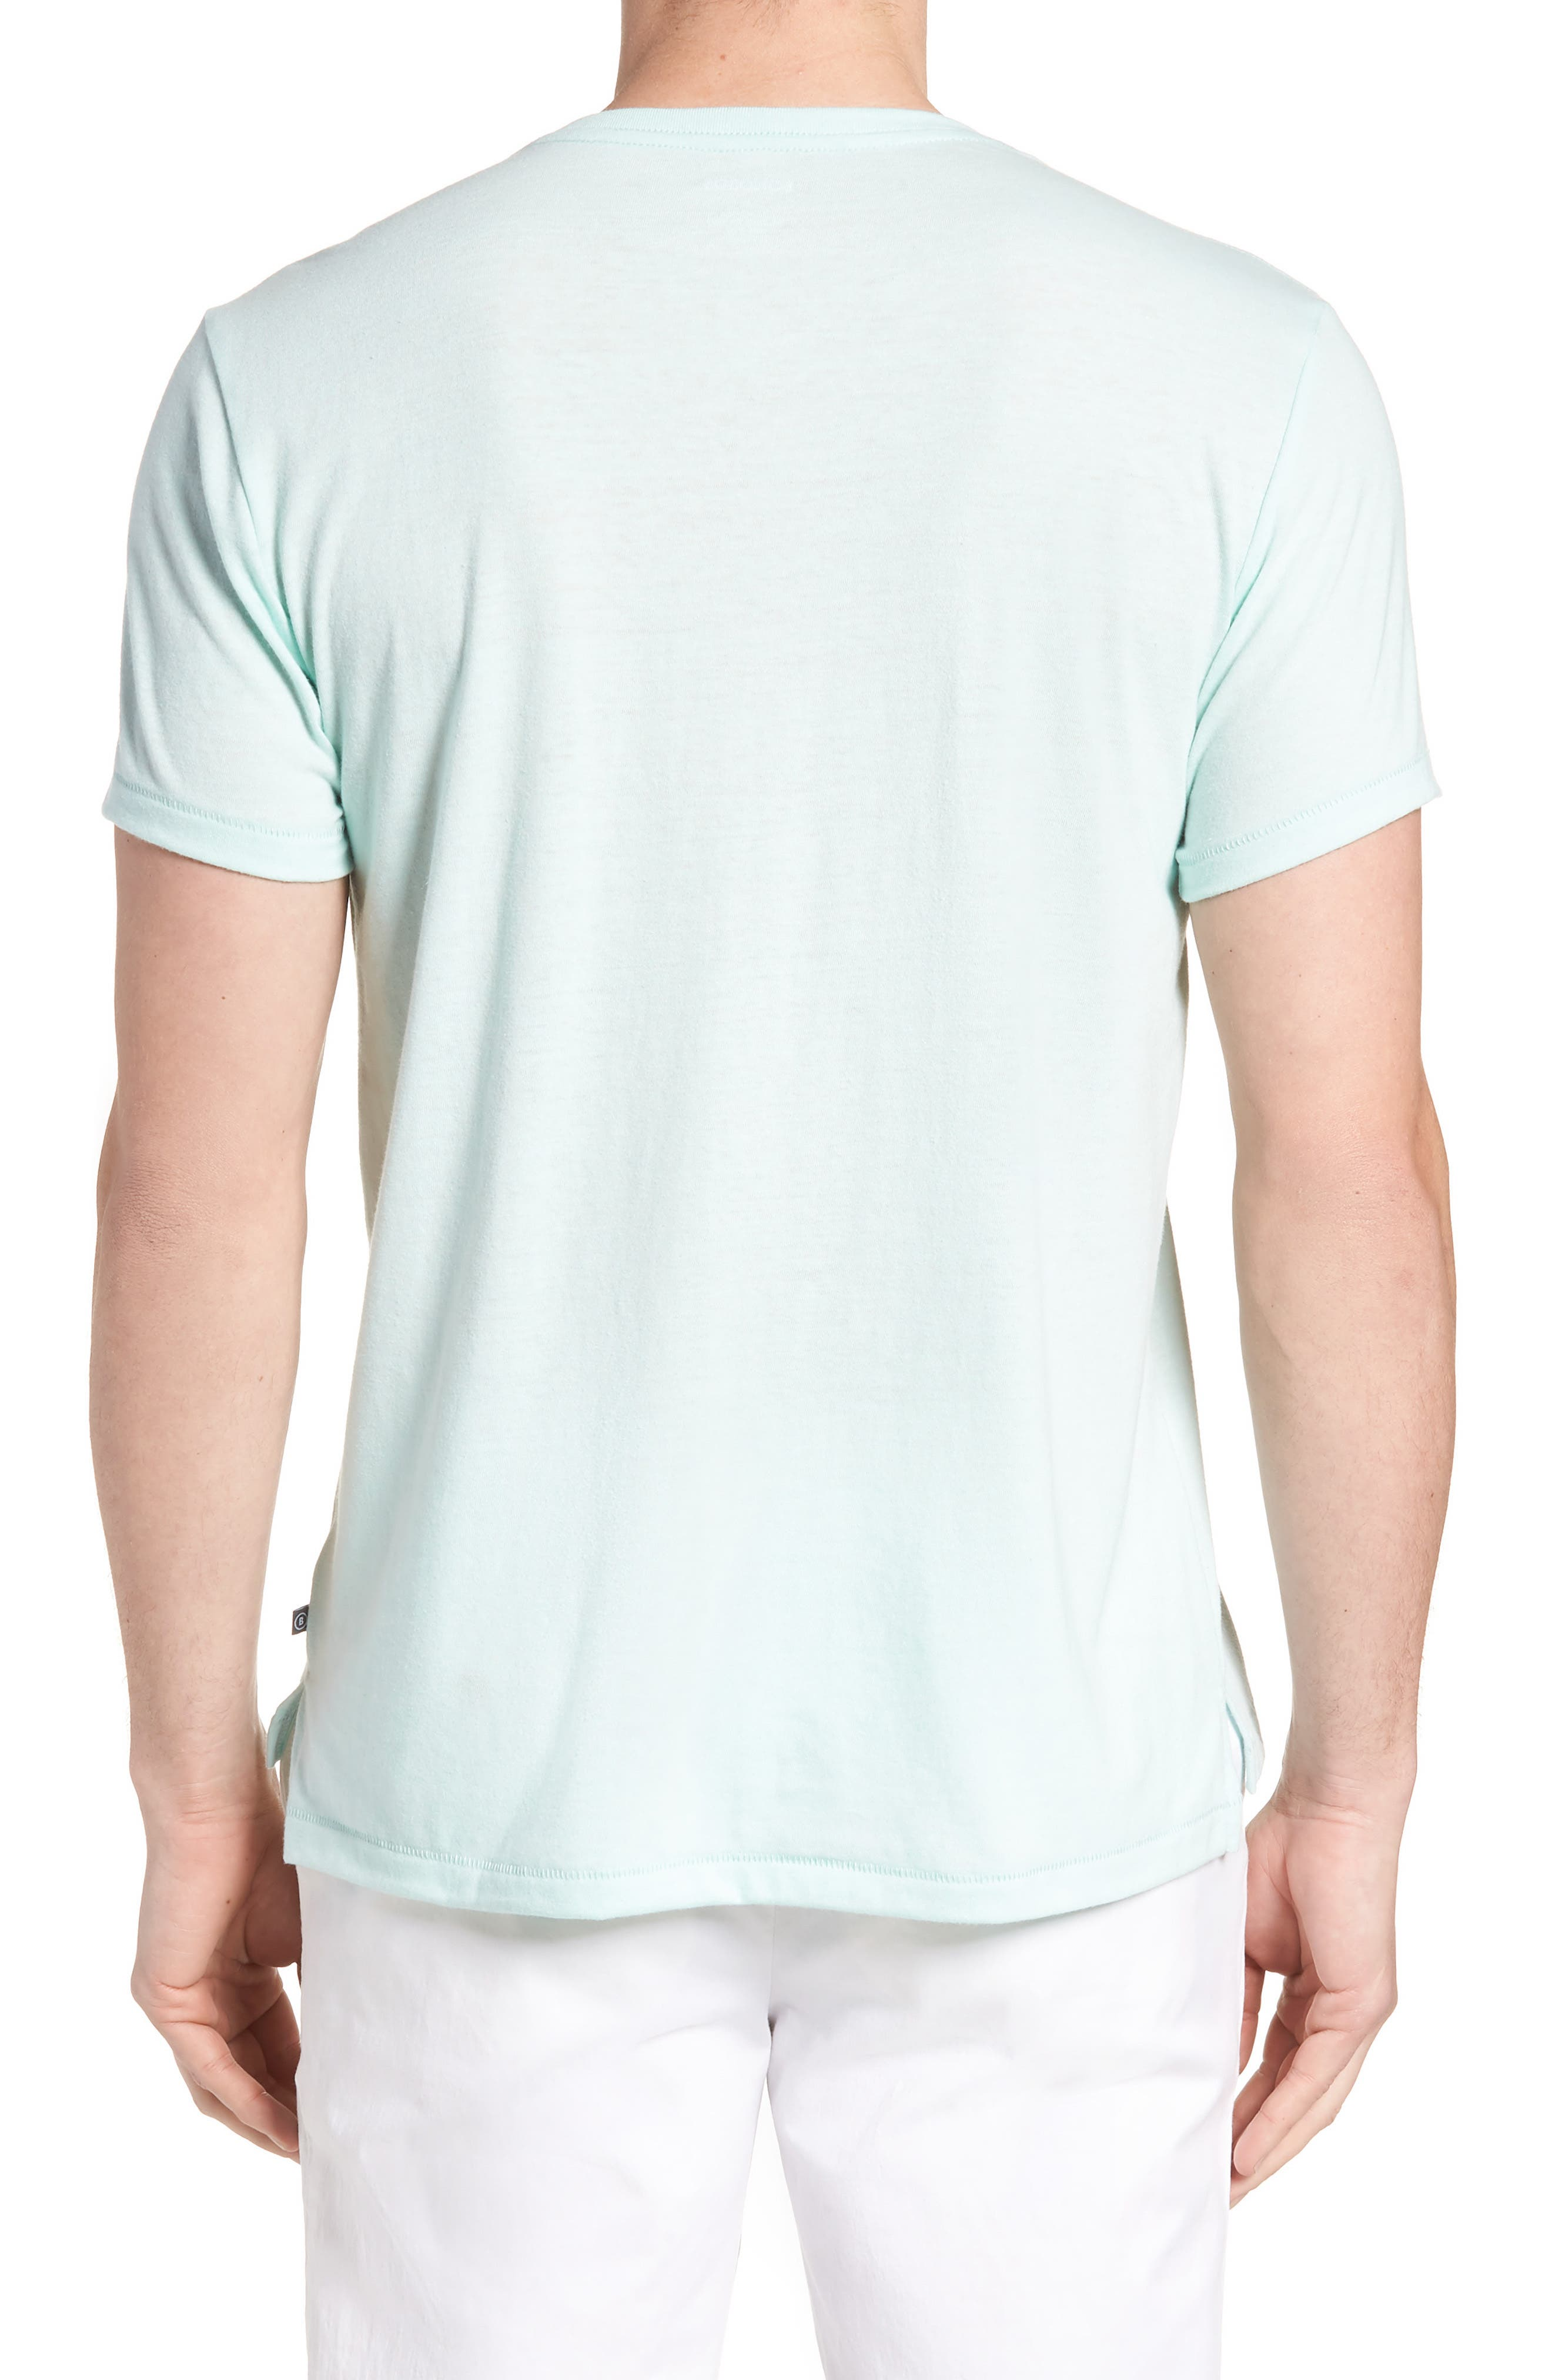 LA Slim Fit Heathered T-Shirt,                             Alternate thumbnail 2, color,                             Heather Mint